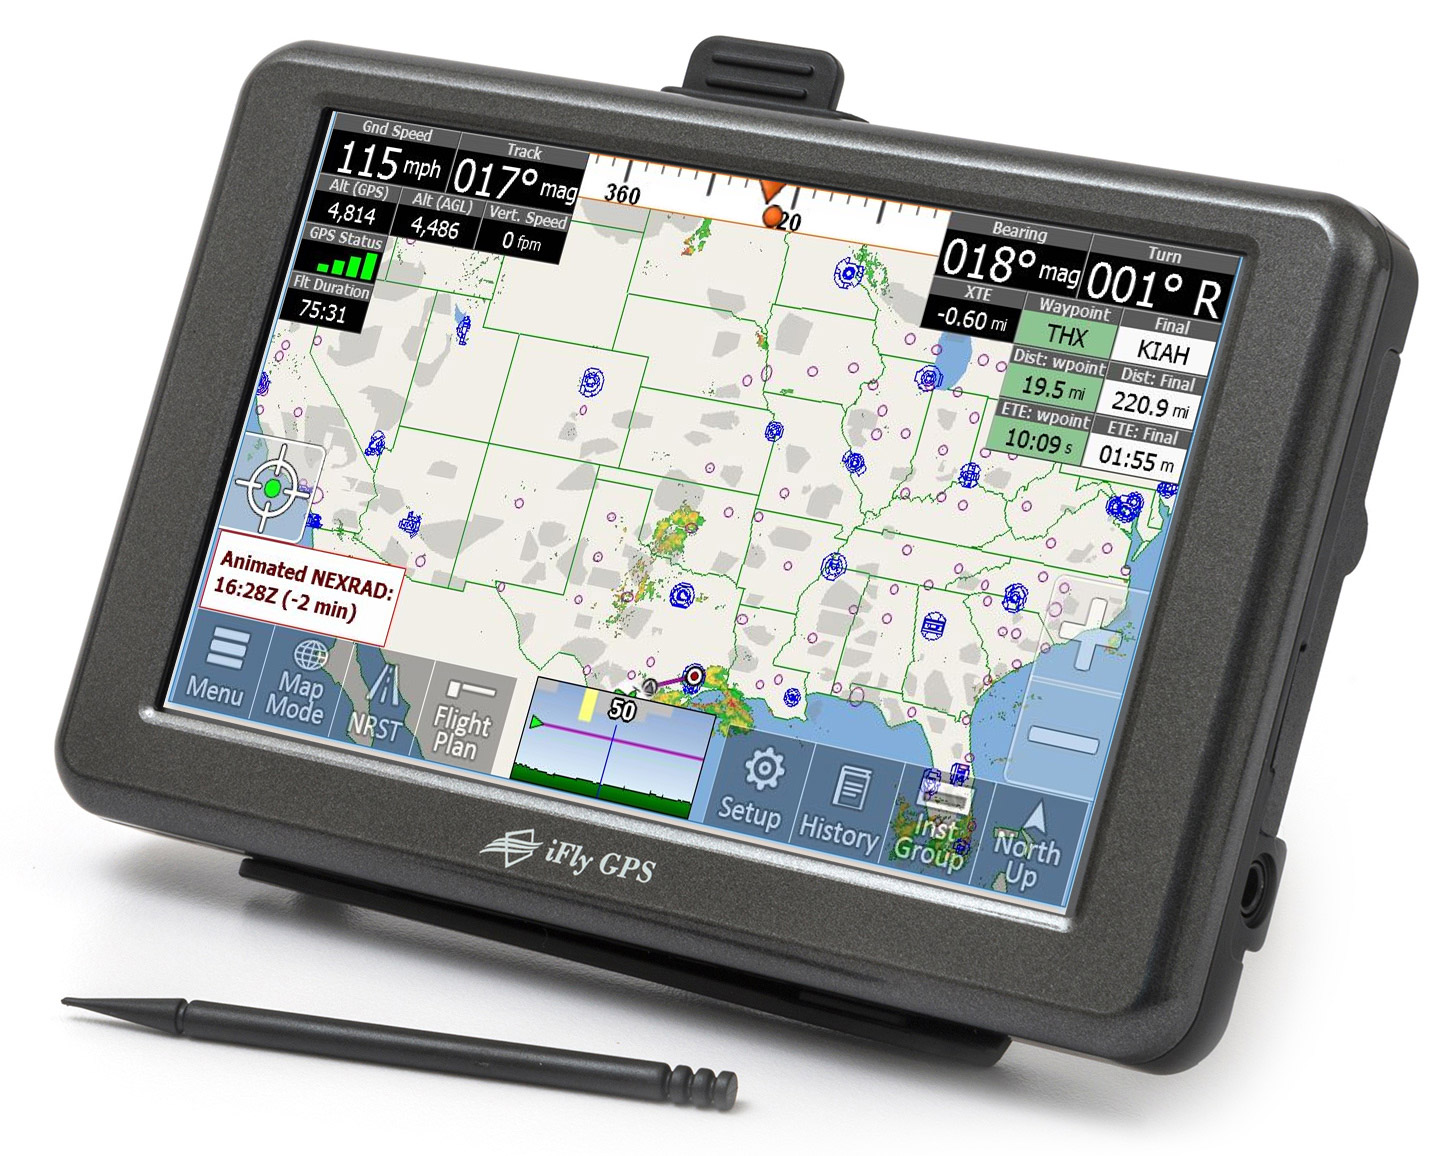 Ifly 520 Moving Map Gps For Pilots Aviation Knee Key Systems Wiring Diagram